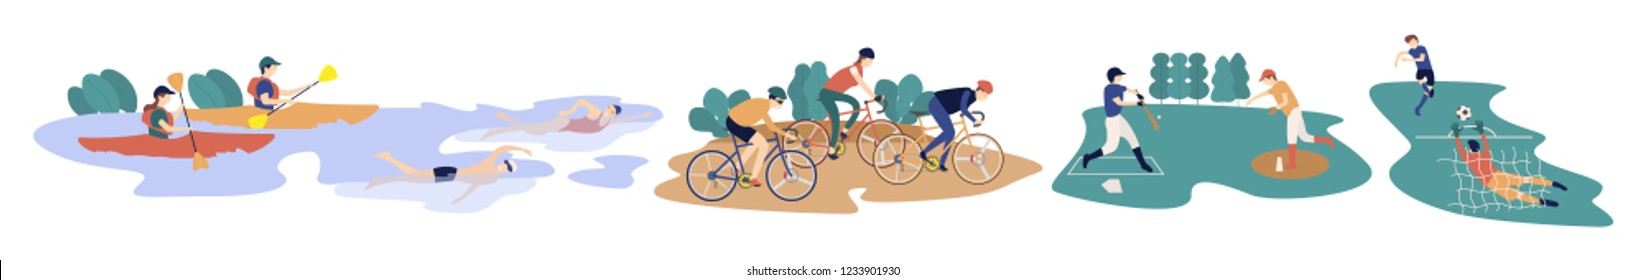 People cartoon enjoying sports outdoors,outdoor activities and spring sports set,riding bikes,swimming,kayaking or canoeing,baseball with home runs,shoot ball with goal,flat style,vector illustration.